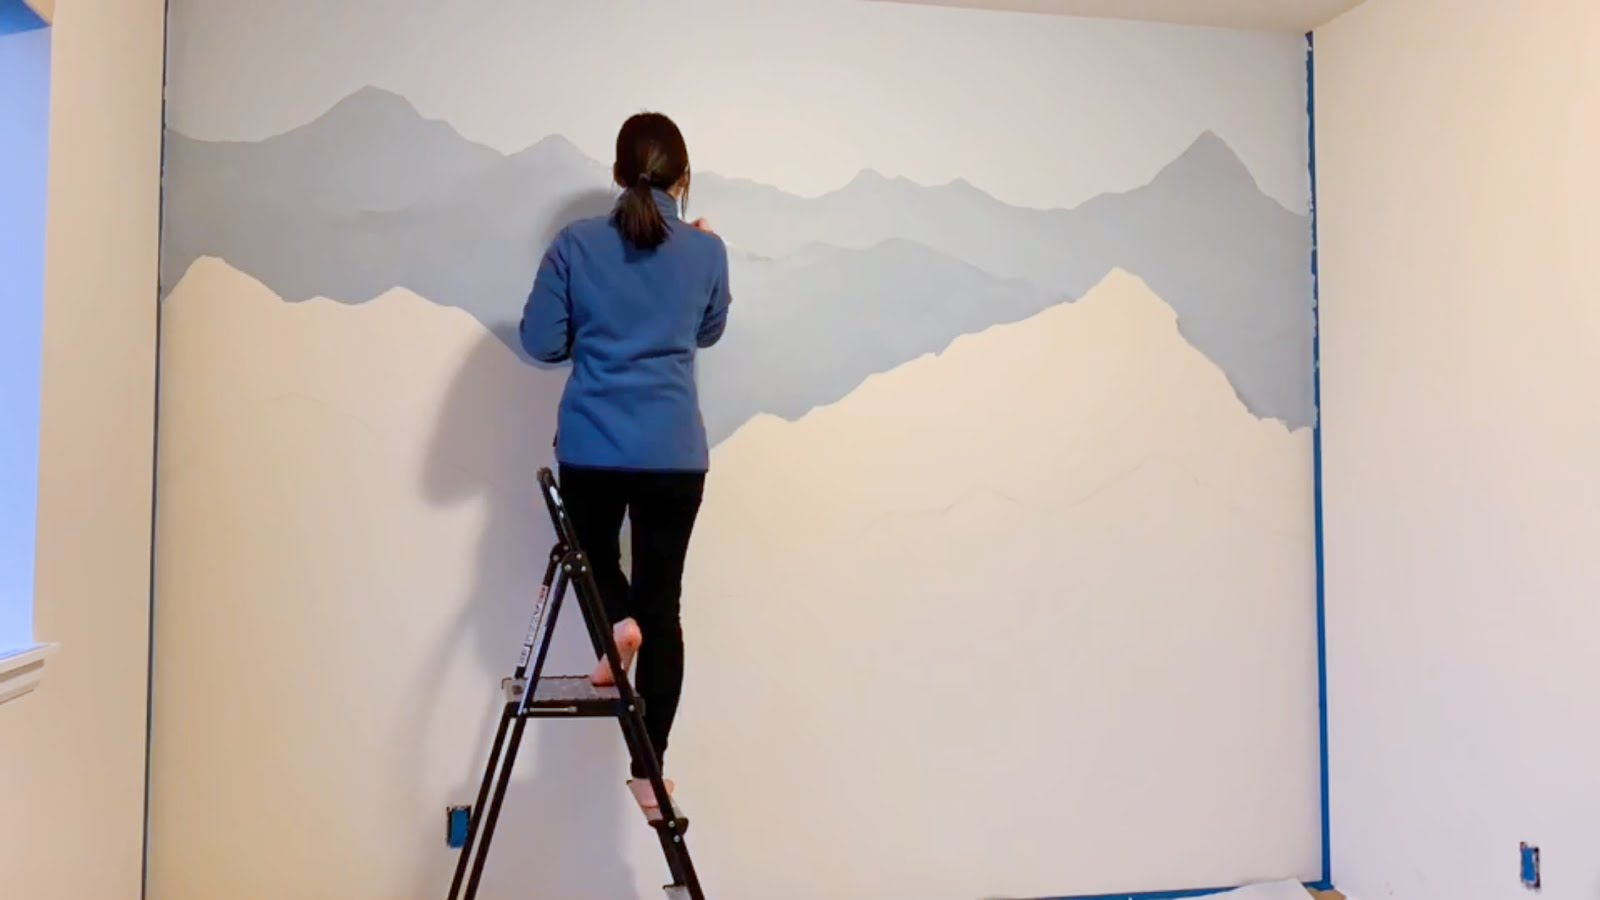 How To Paint A Mountain Mural On Your Bedroom Or Nursery Wall Diy Timelapse Speed Painting Sweet Softies Amigurumi And Crochet